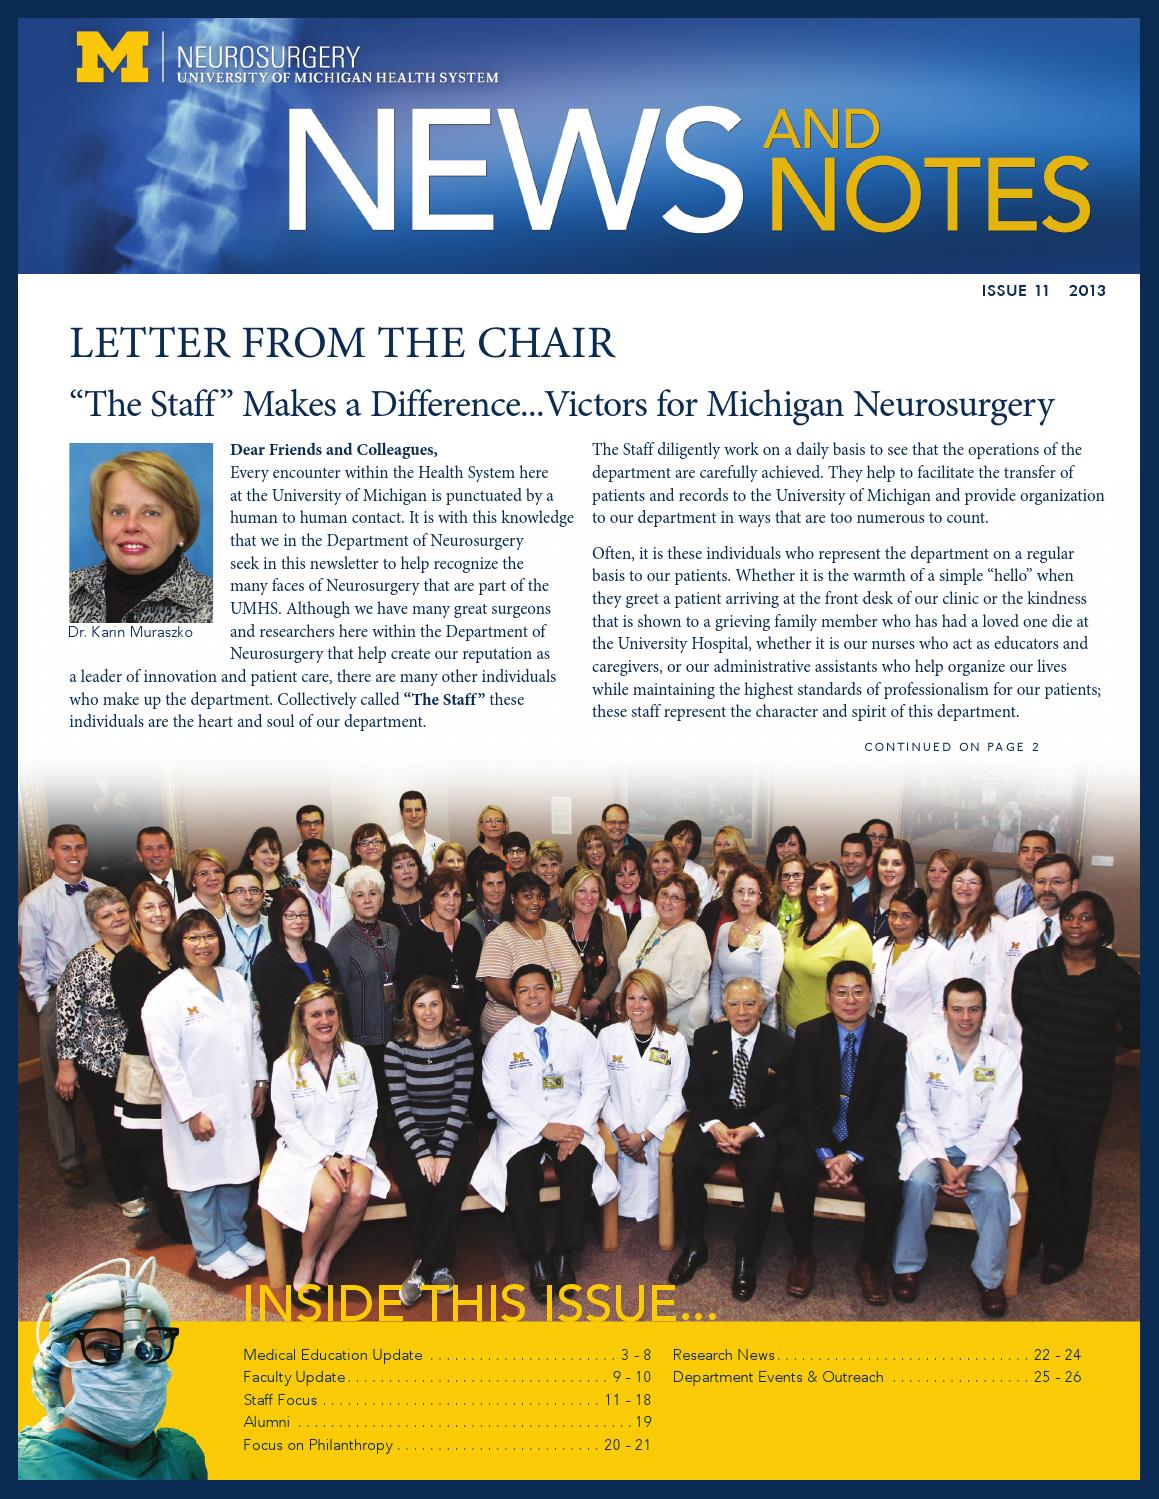 pvm report 2013 annual report by purdue university issuu news and notes issue 11 2013